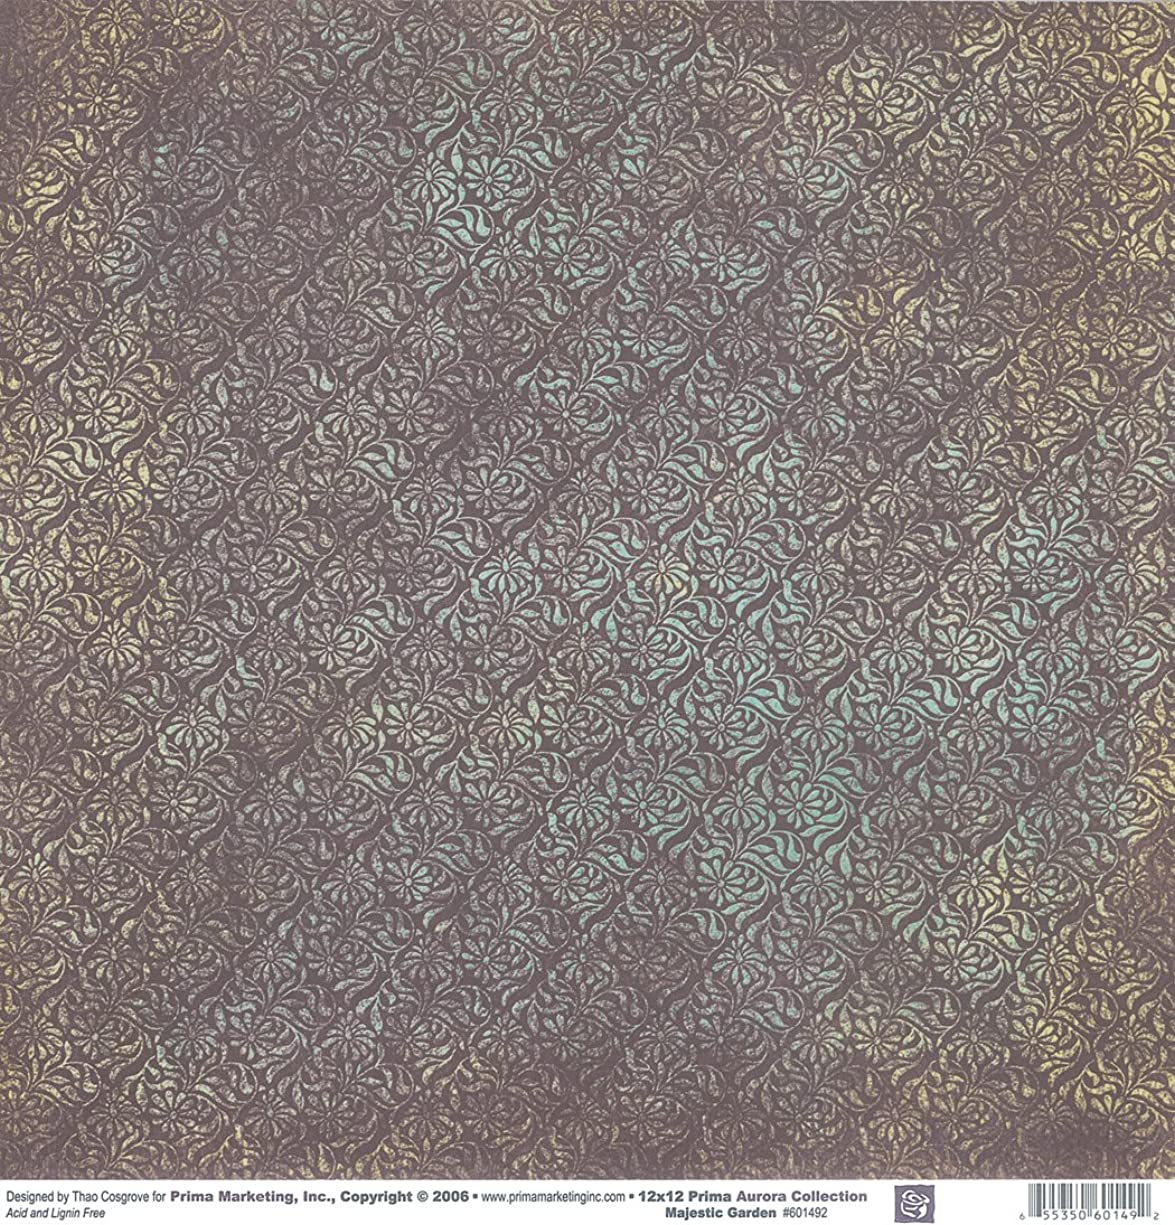 Prima 601492 12 by 12-Inch Aurora Double Sided Patterned Cardstock Paper, Majestic Garden, 25-Pack